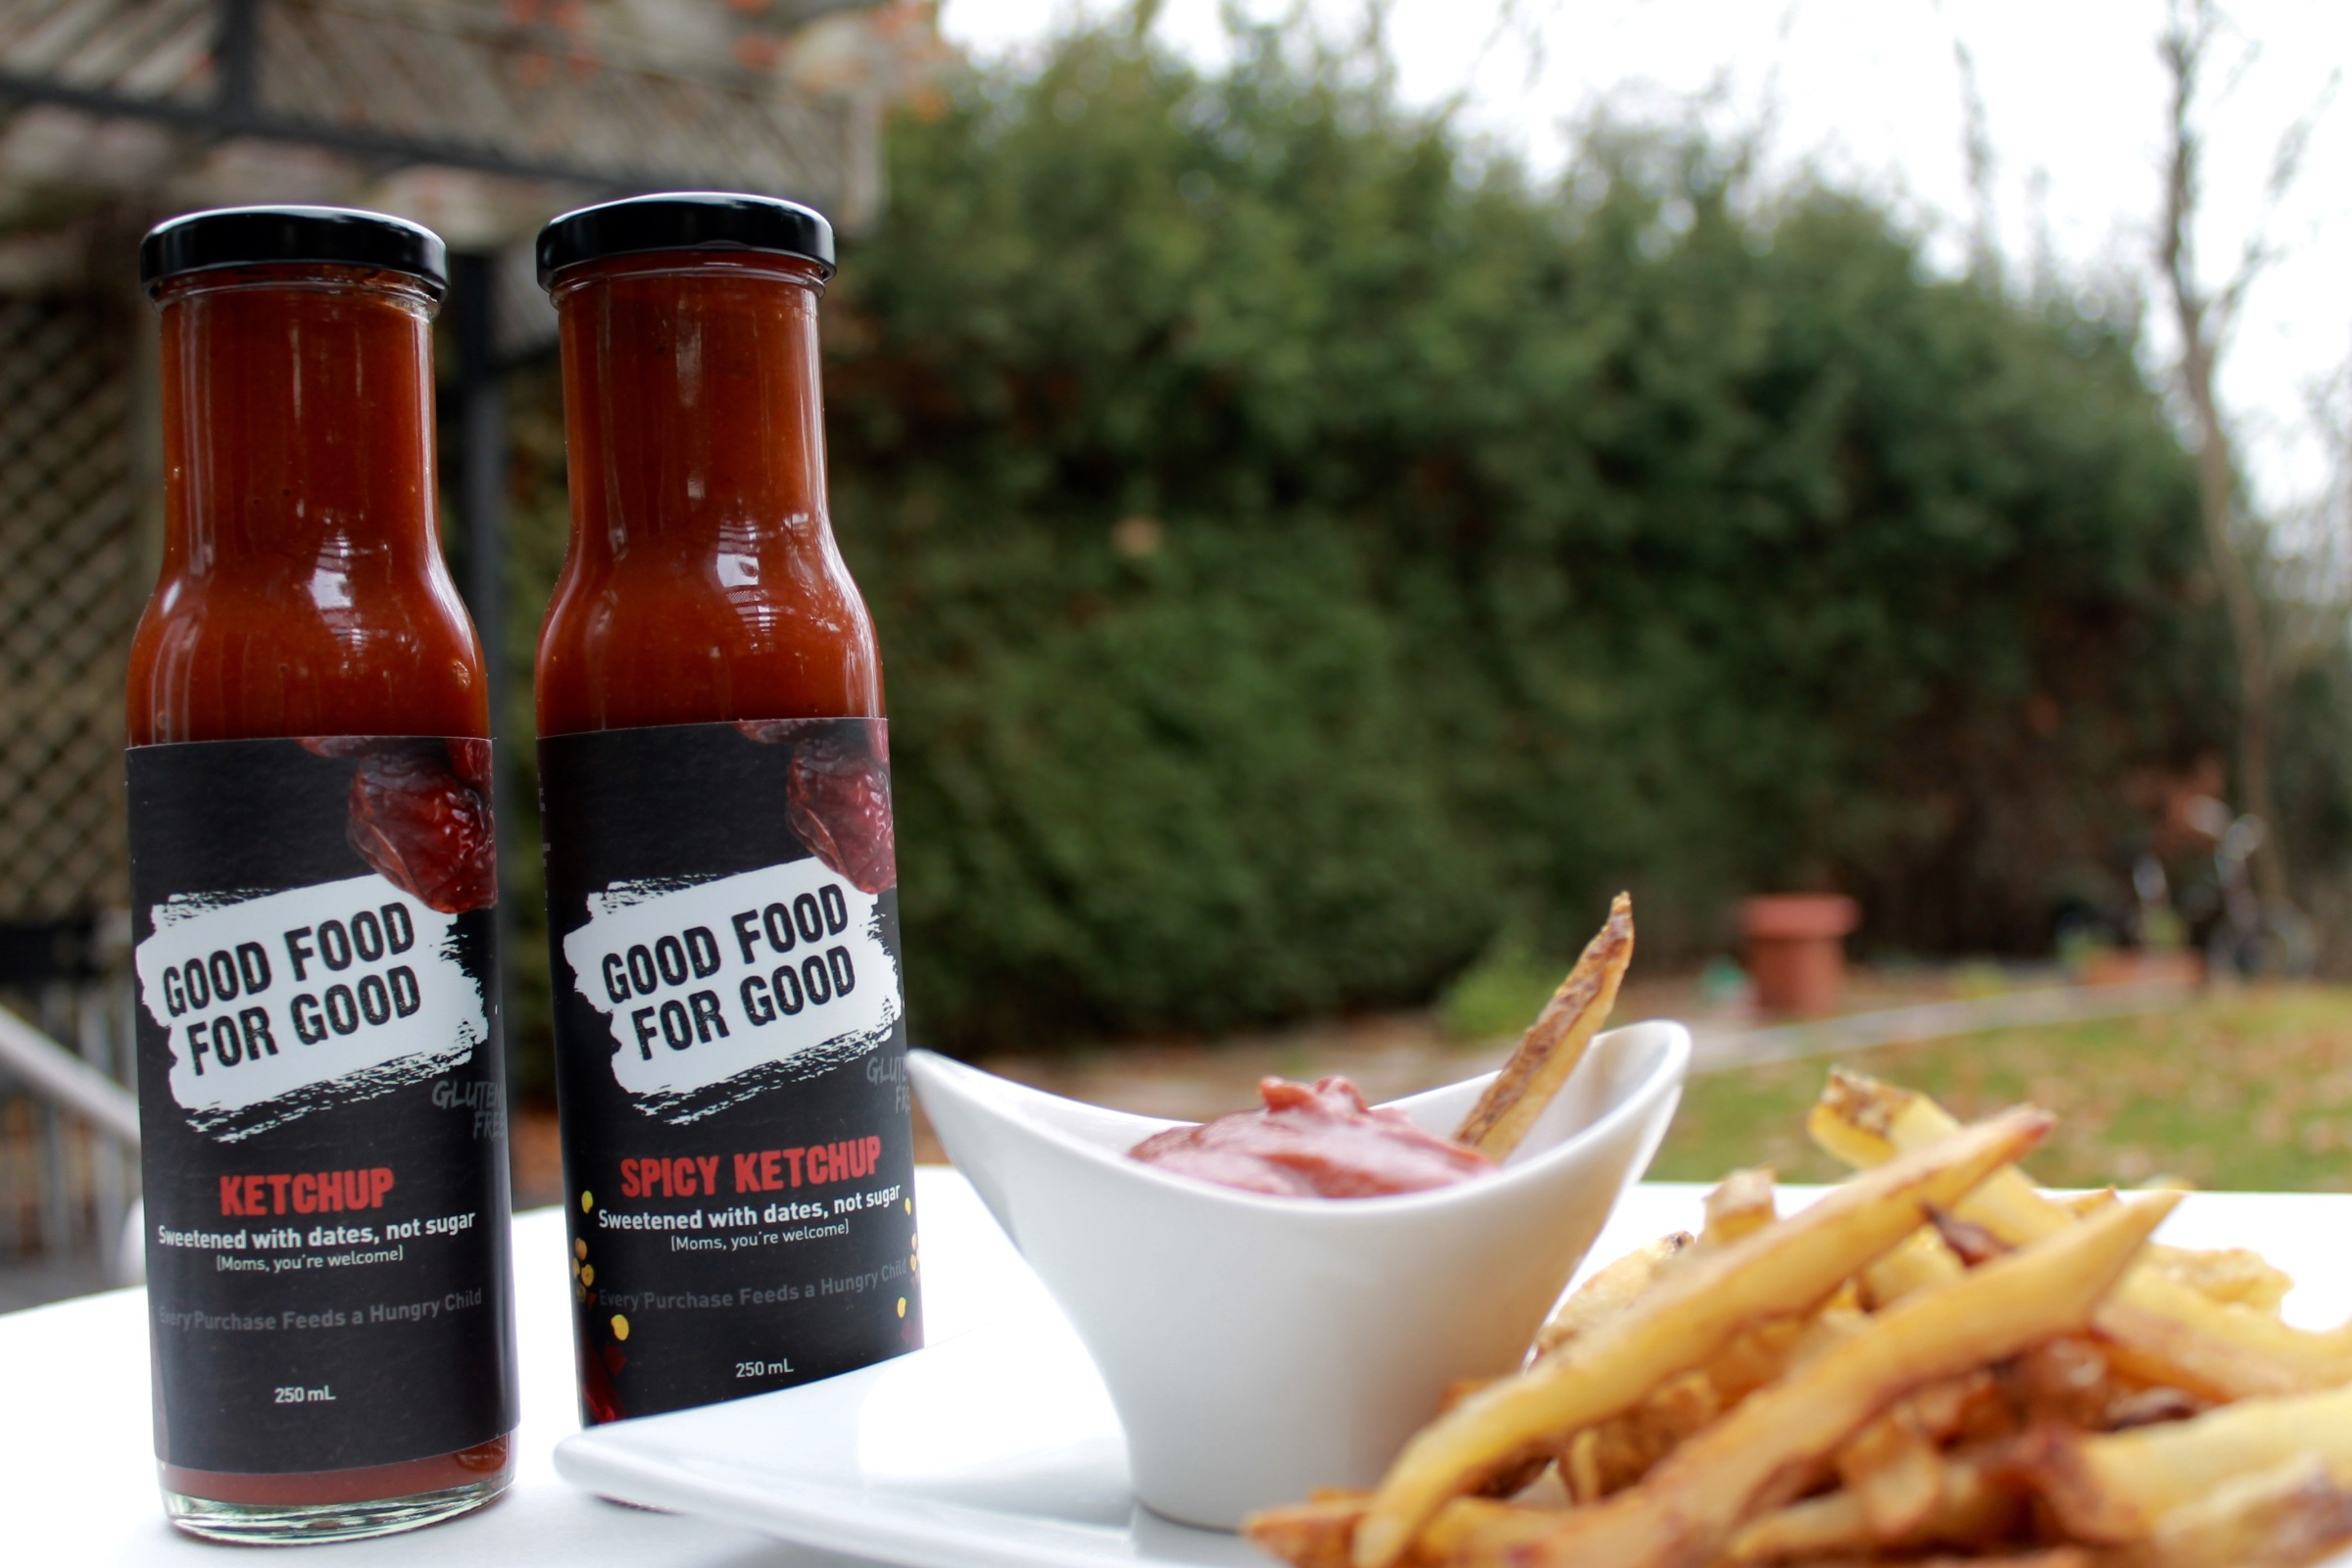 GOOD FOOD FOR GOOD Ketchup, Sweetened with Dates - Moms you're welcome